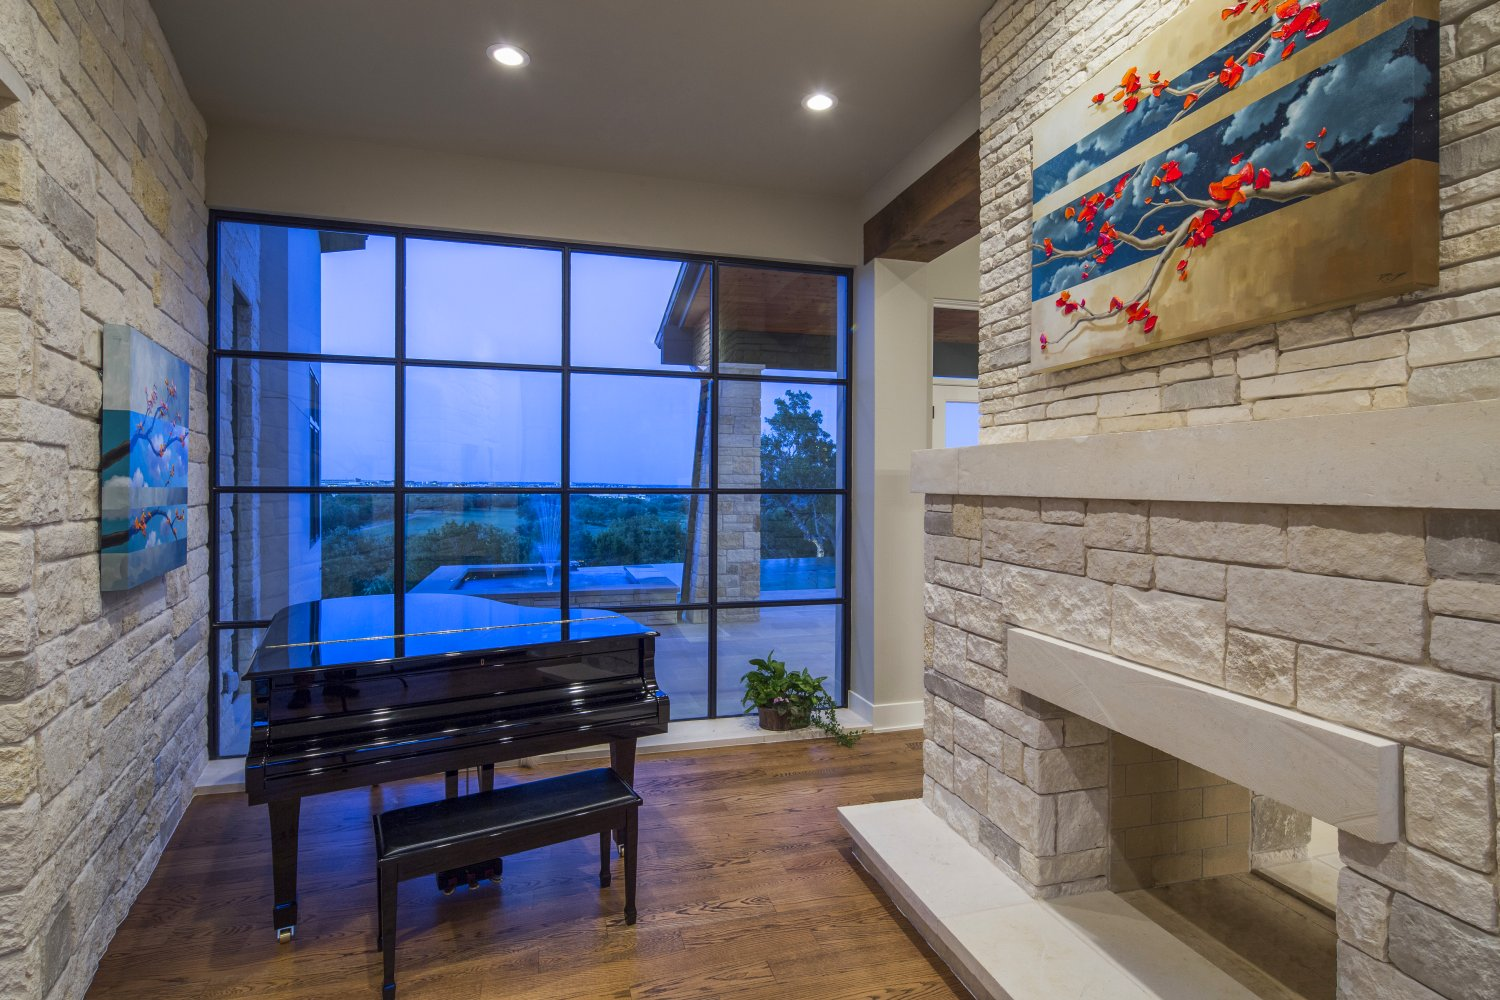 Architecture Home Contemporary hacienda Architecture Home Contemporary hacienda foyer